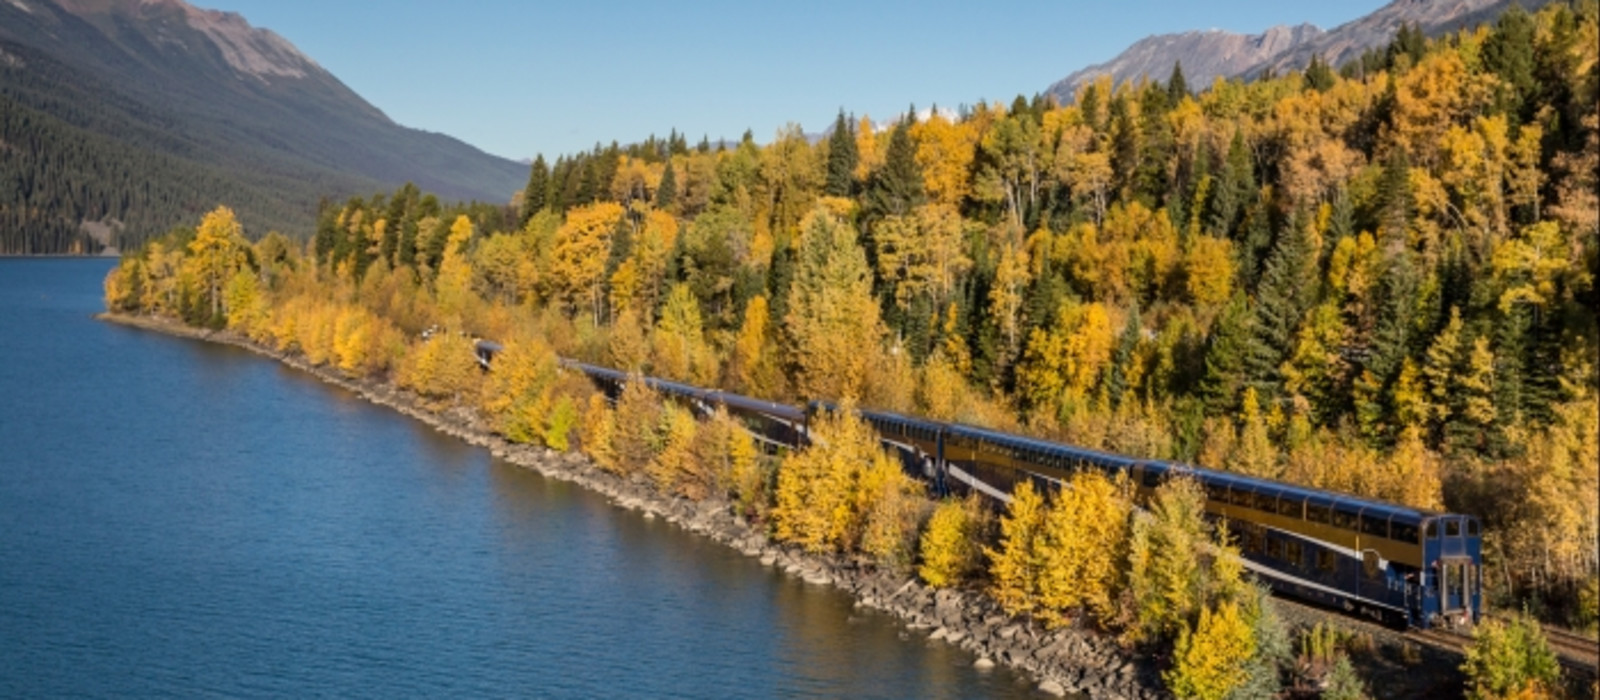 Hotel Rocky Mountaineer Quesnel Canada